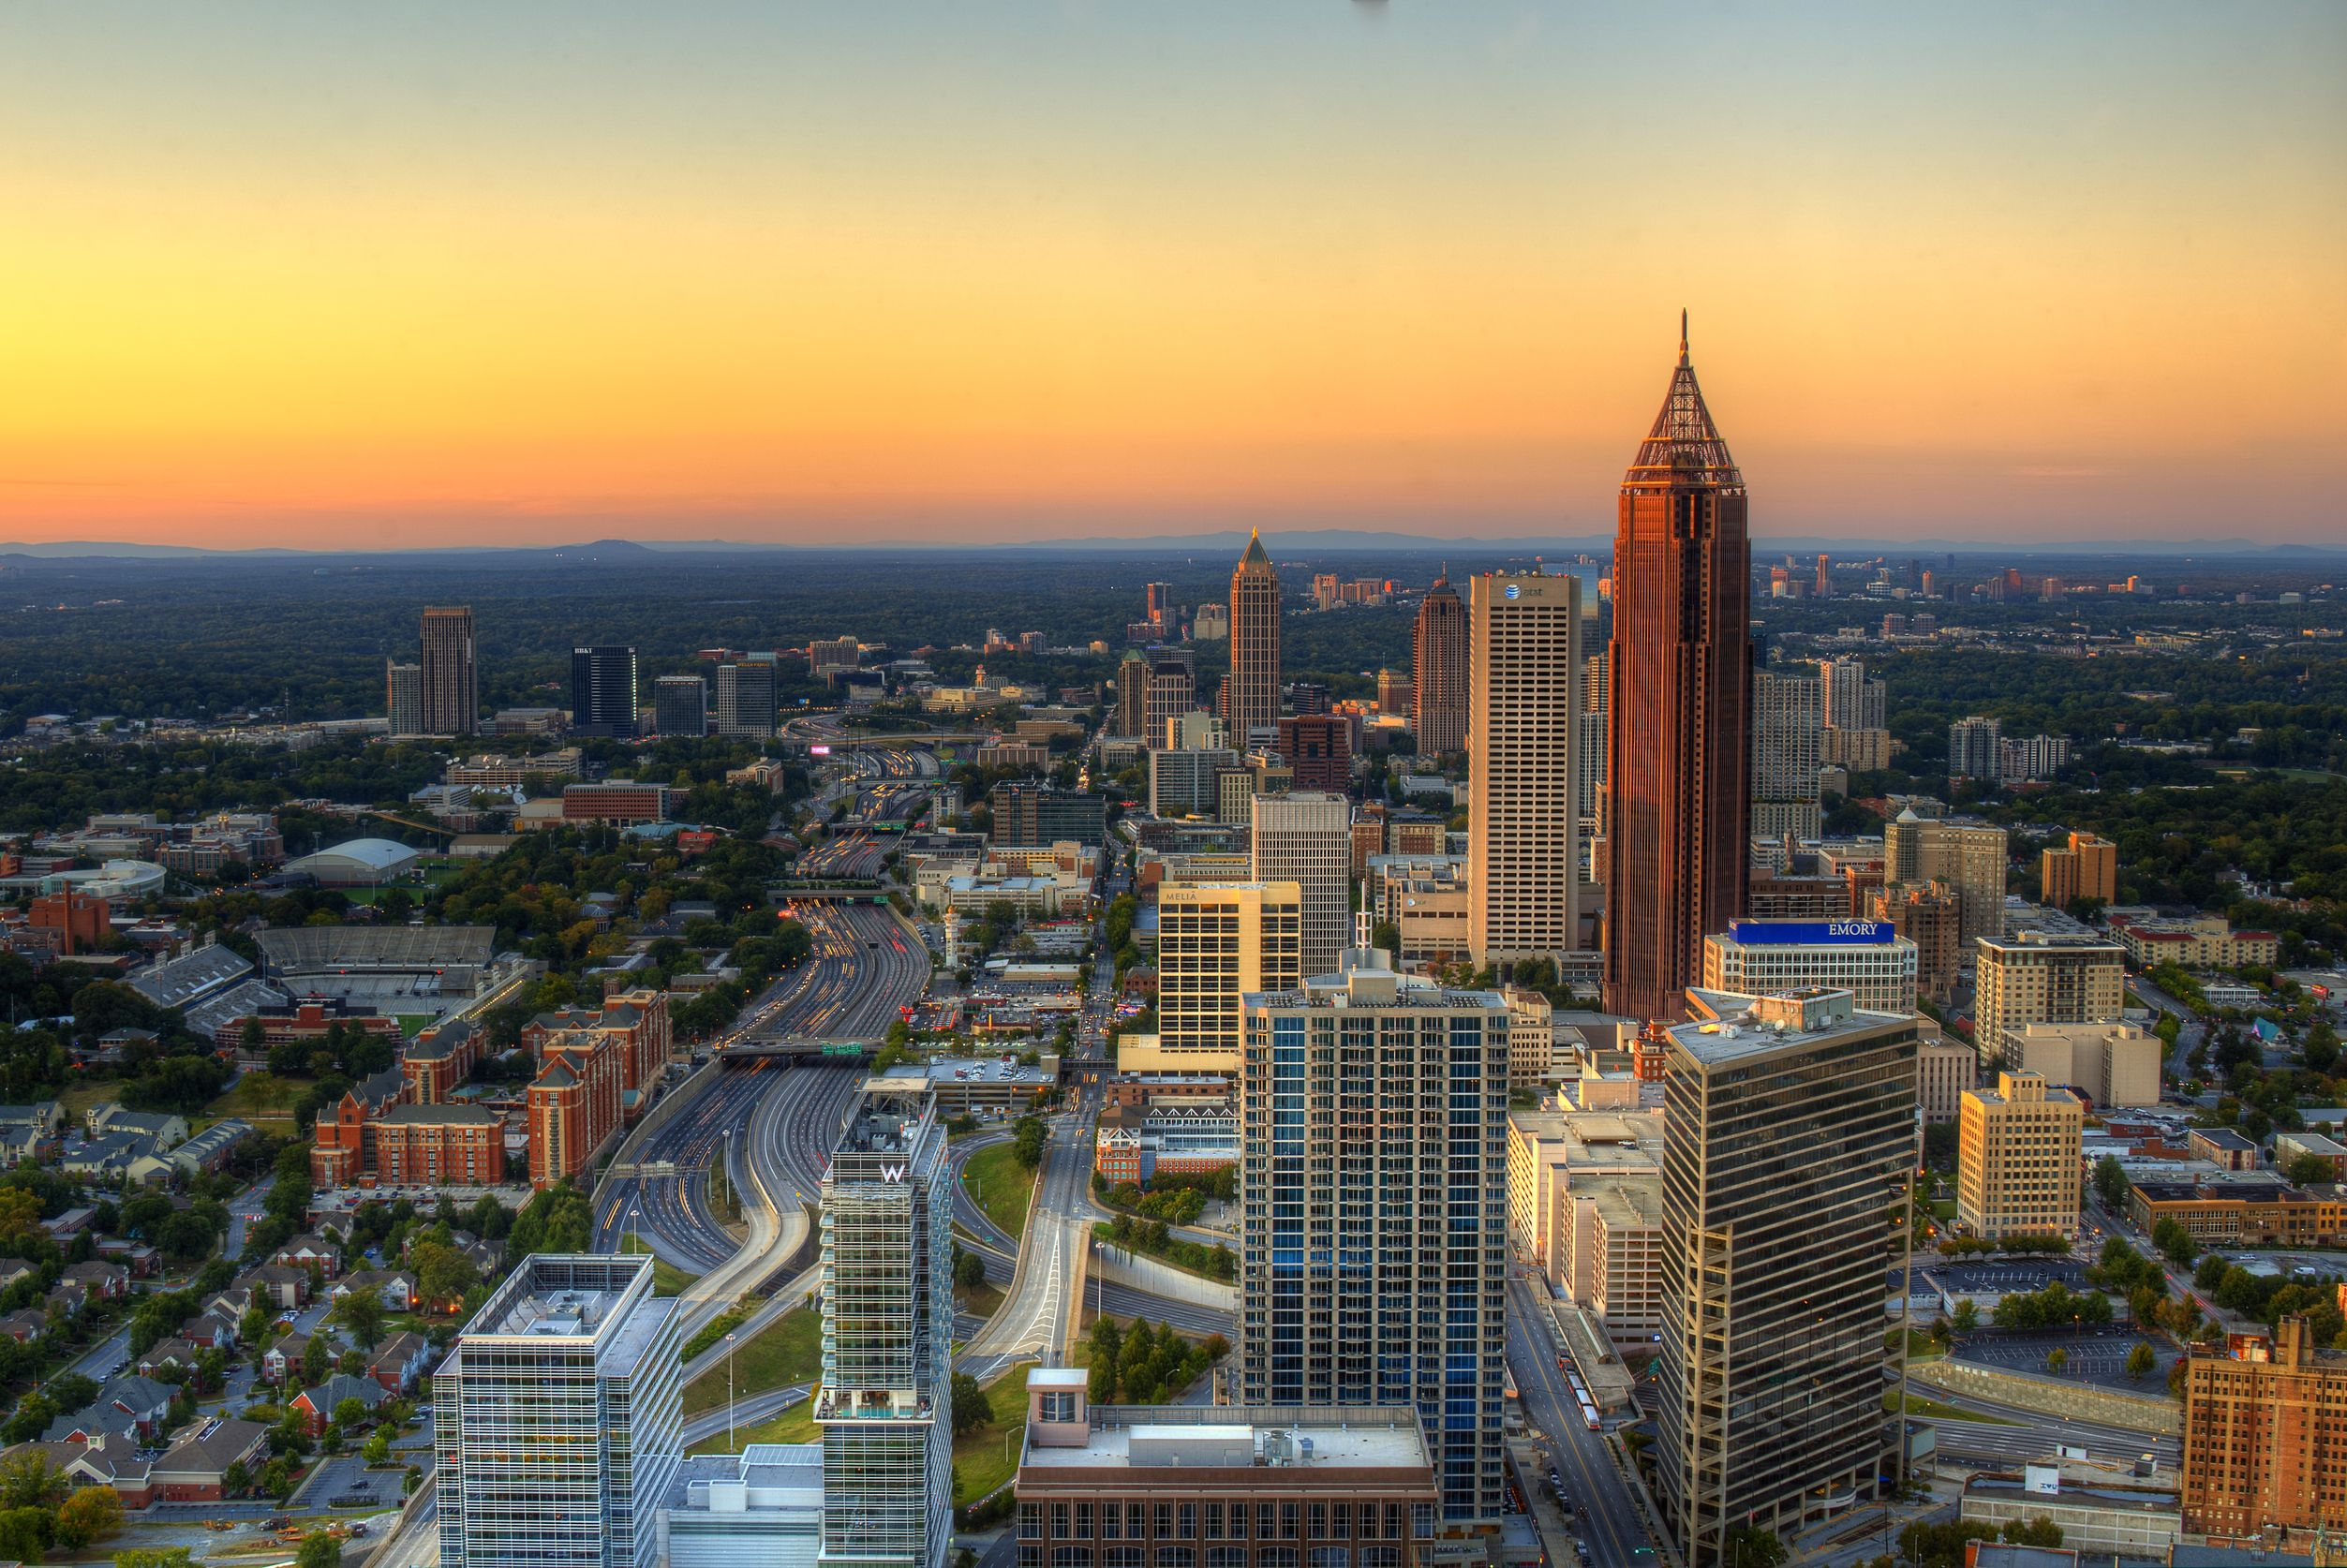 Finding a house and feeling at home are two different things. You can find both in Atlanta if you know where to look.